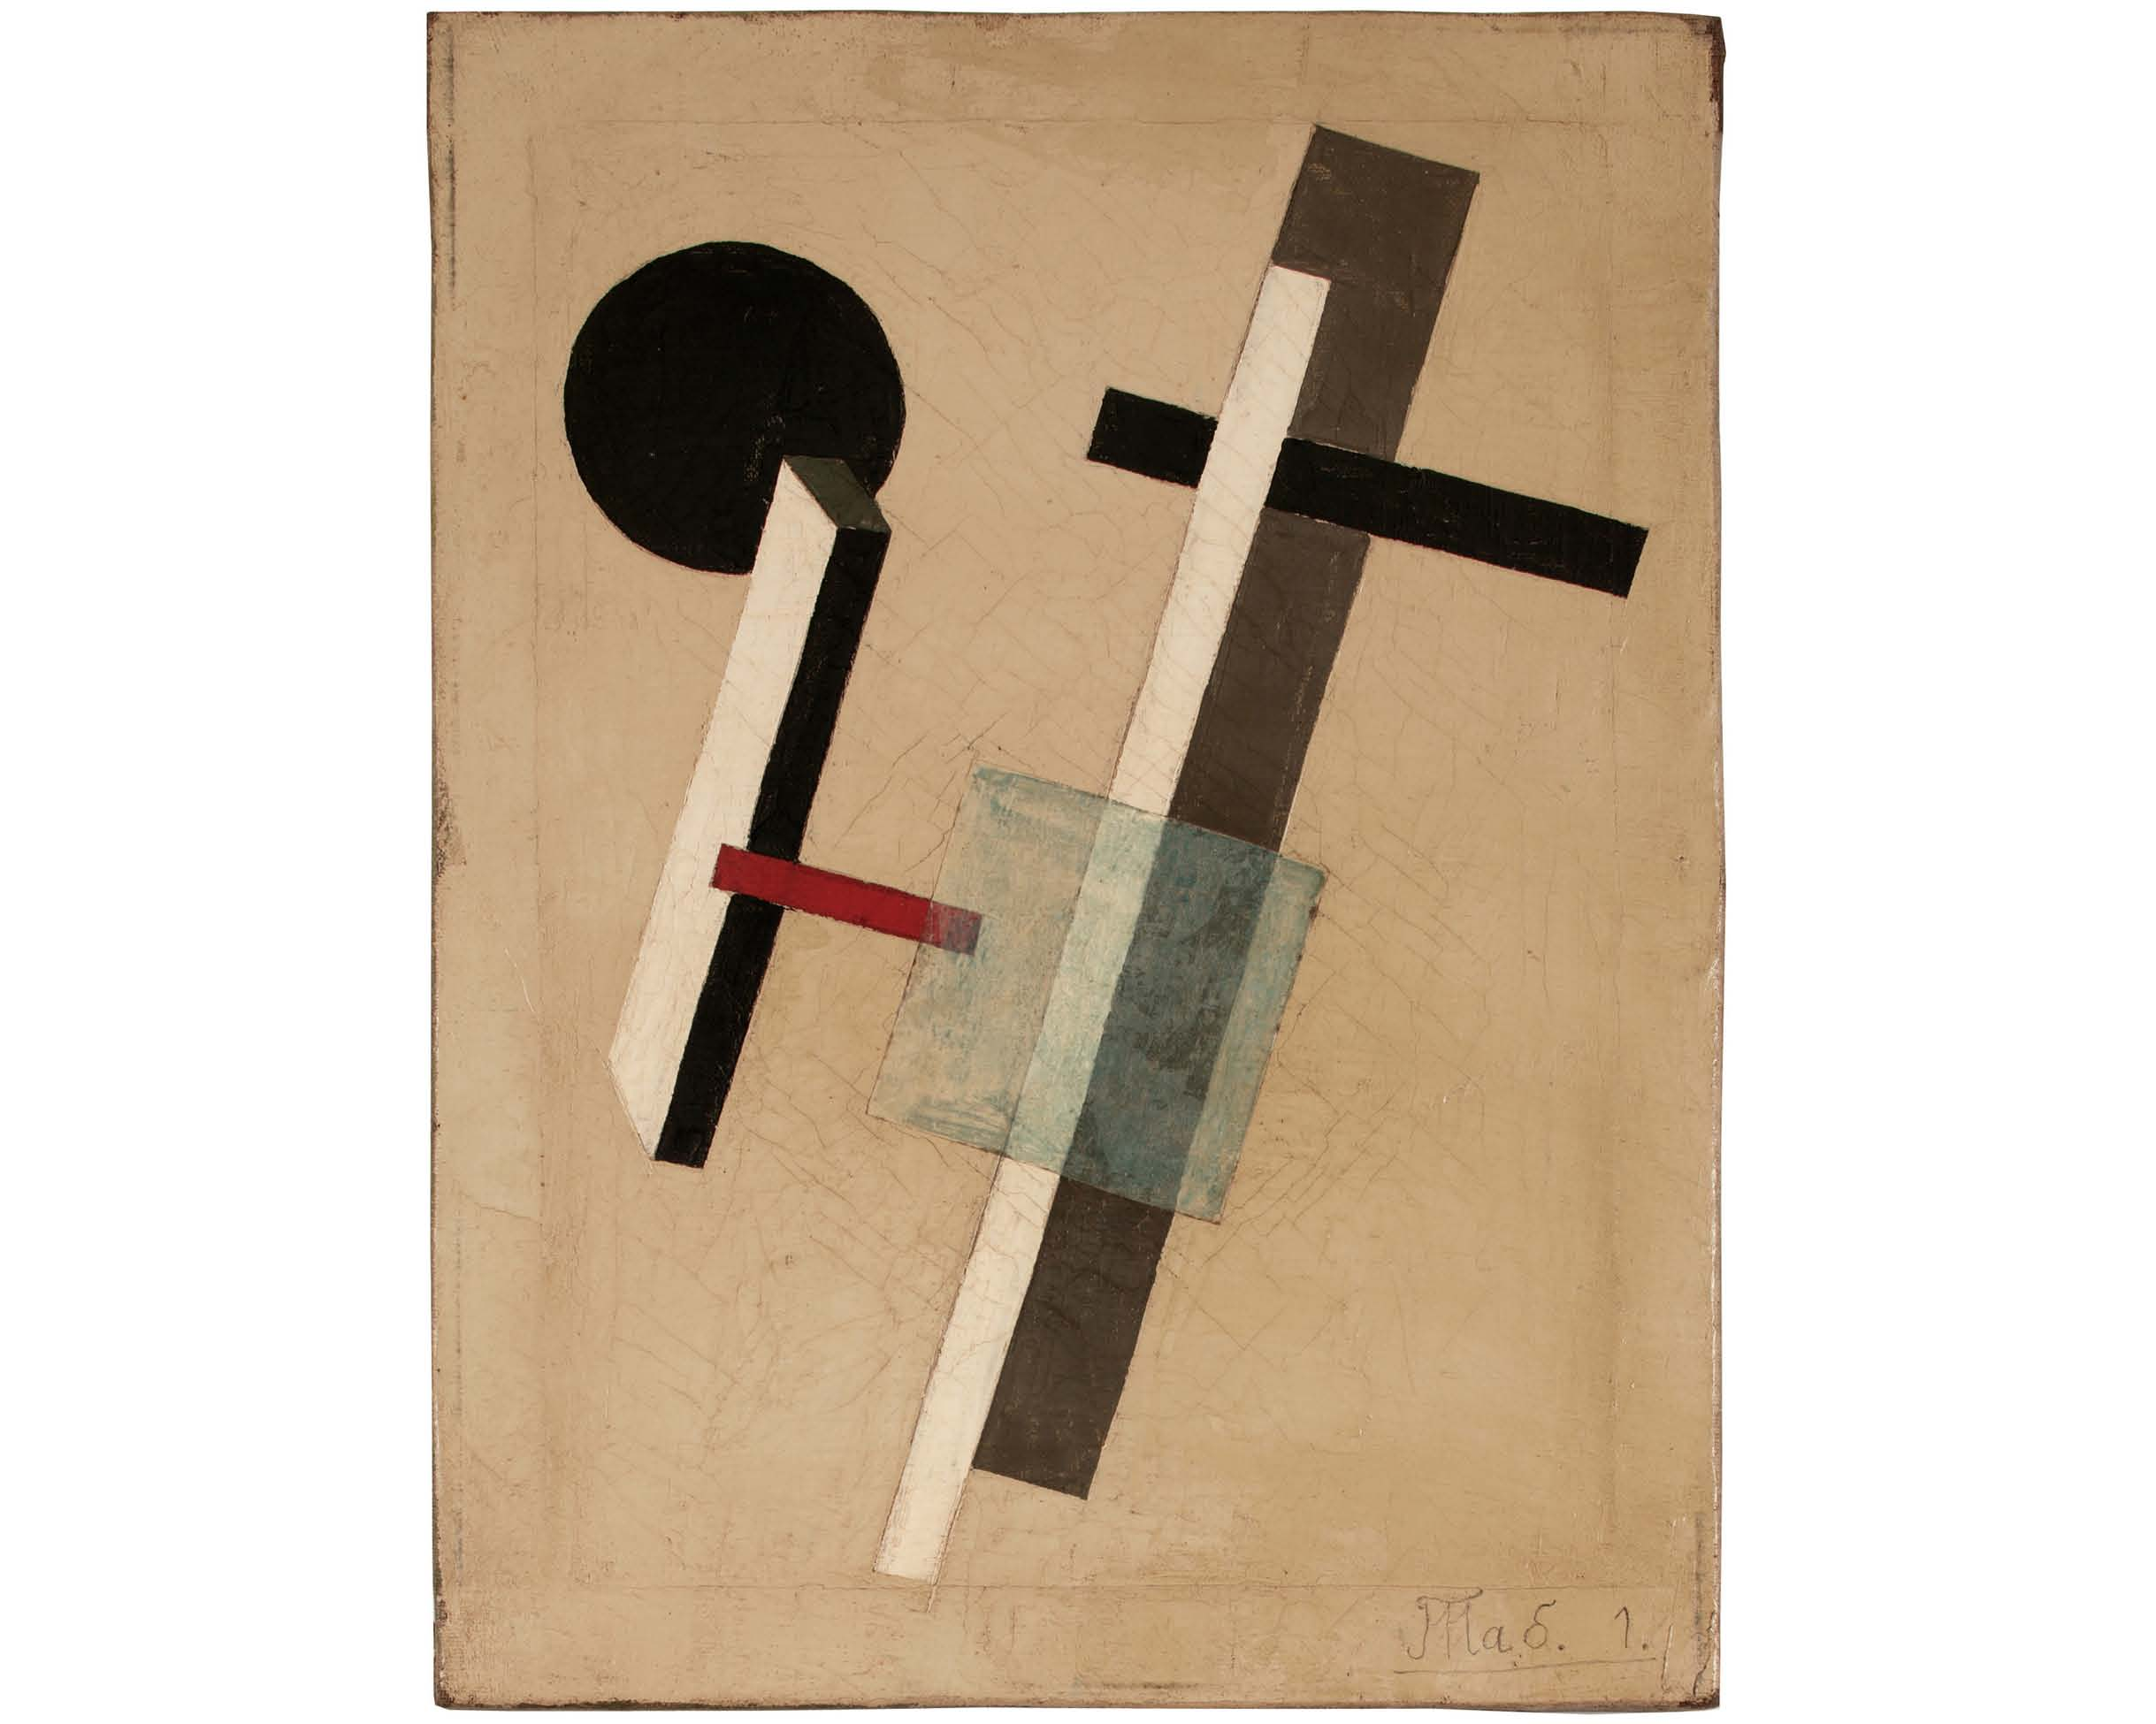 "Unsigned. Unattributed.   In the style of El Lissitzky. Text in Russian, lower left front, translates to ""Tab .1"".  Oil and collage on canvas. 40 x 30 cm."